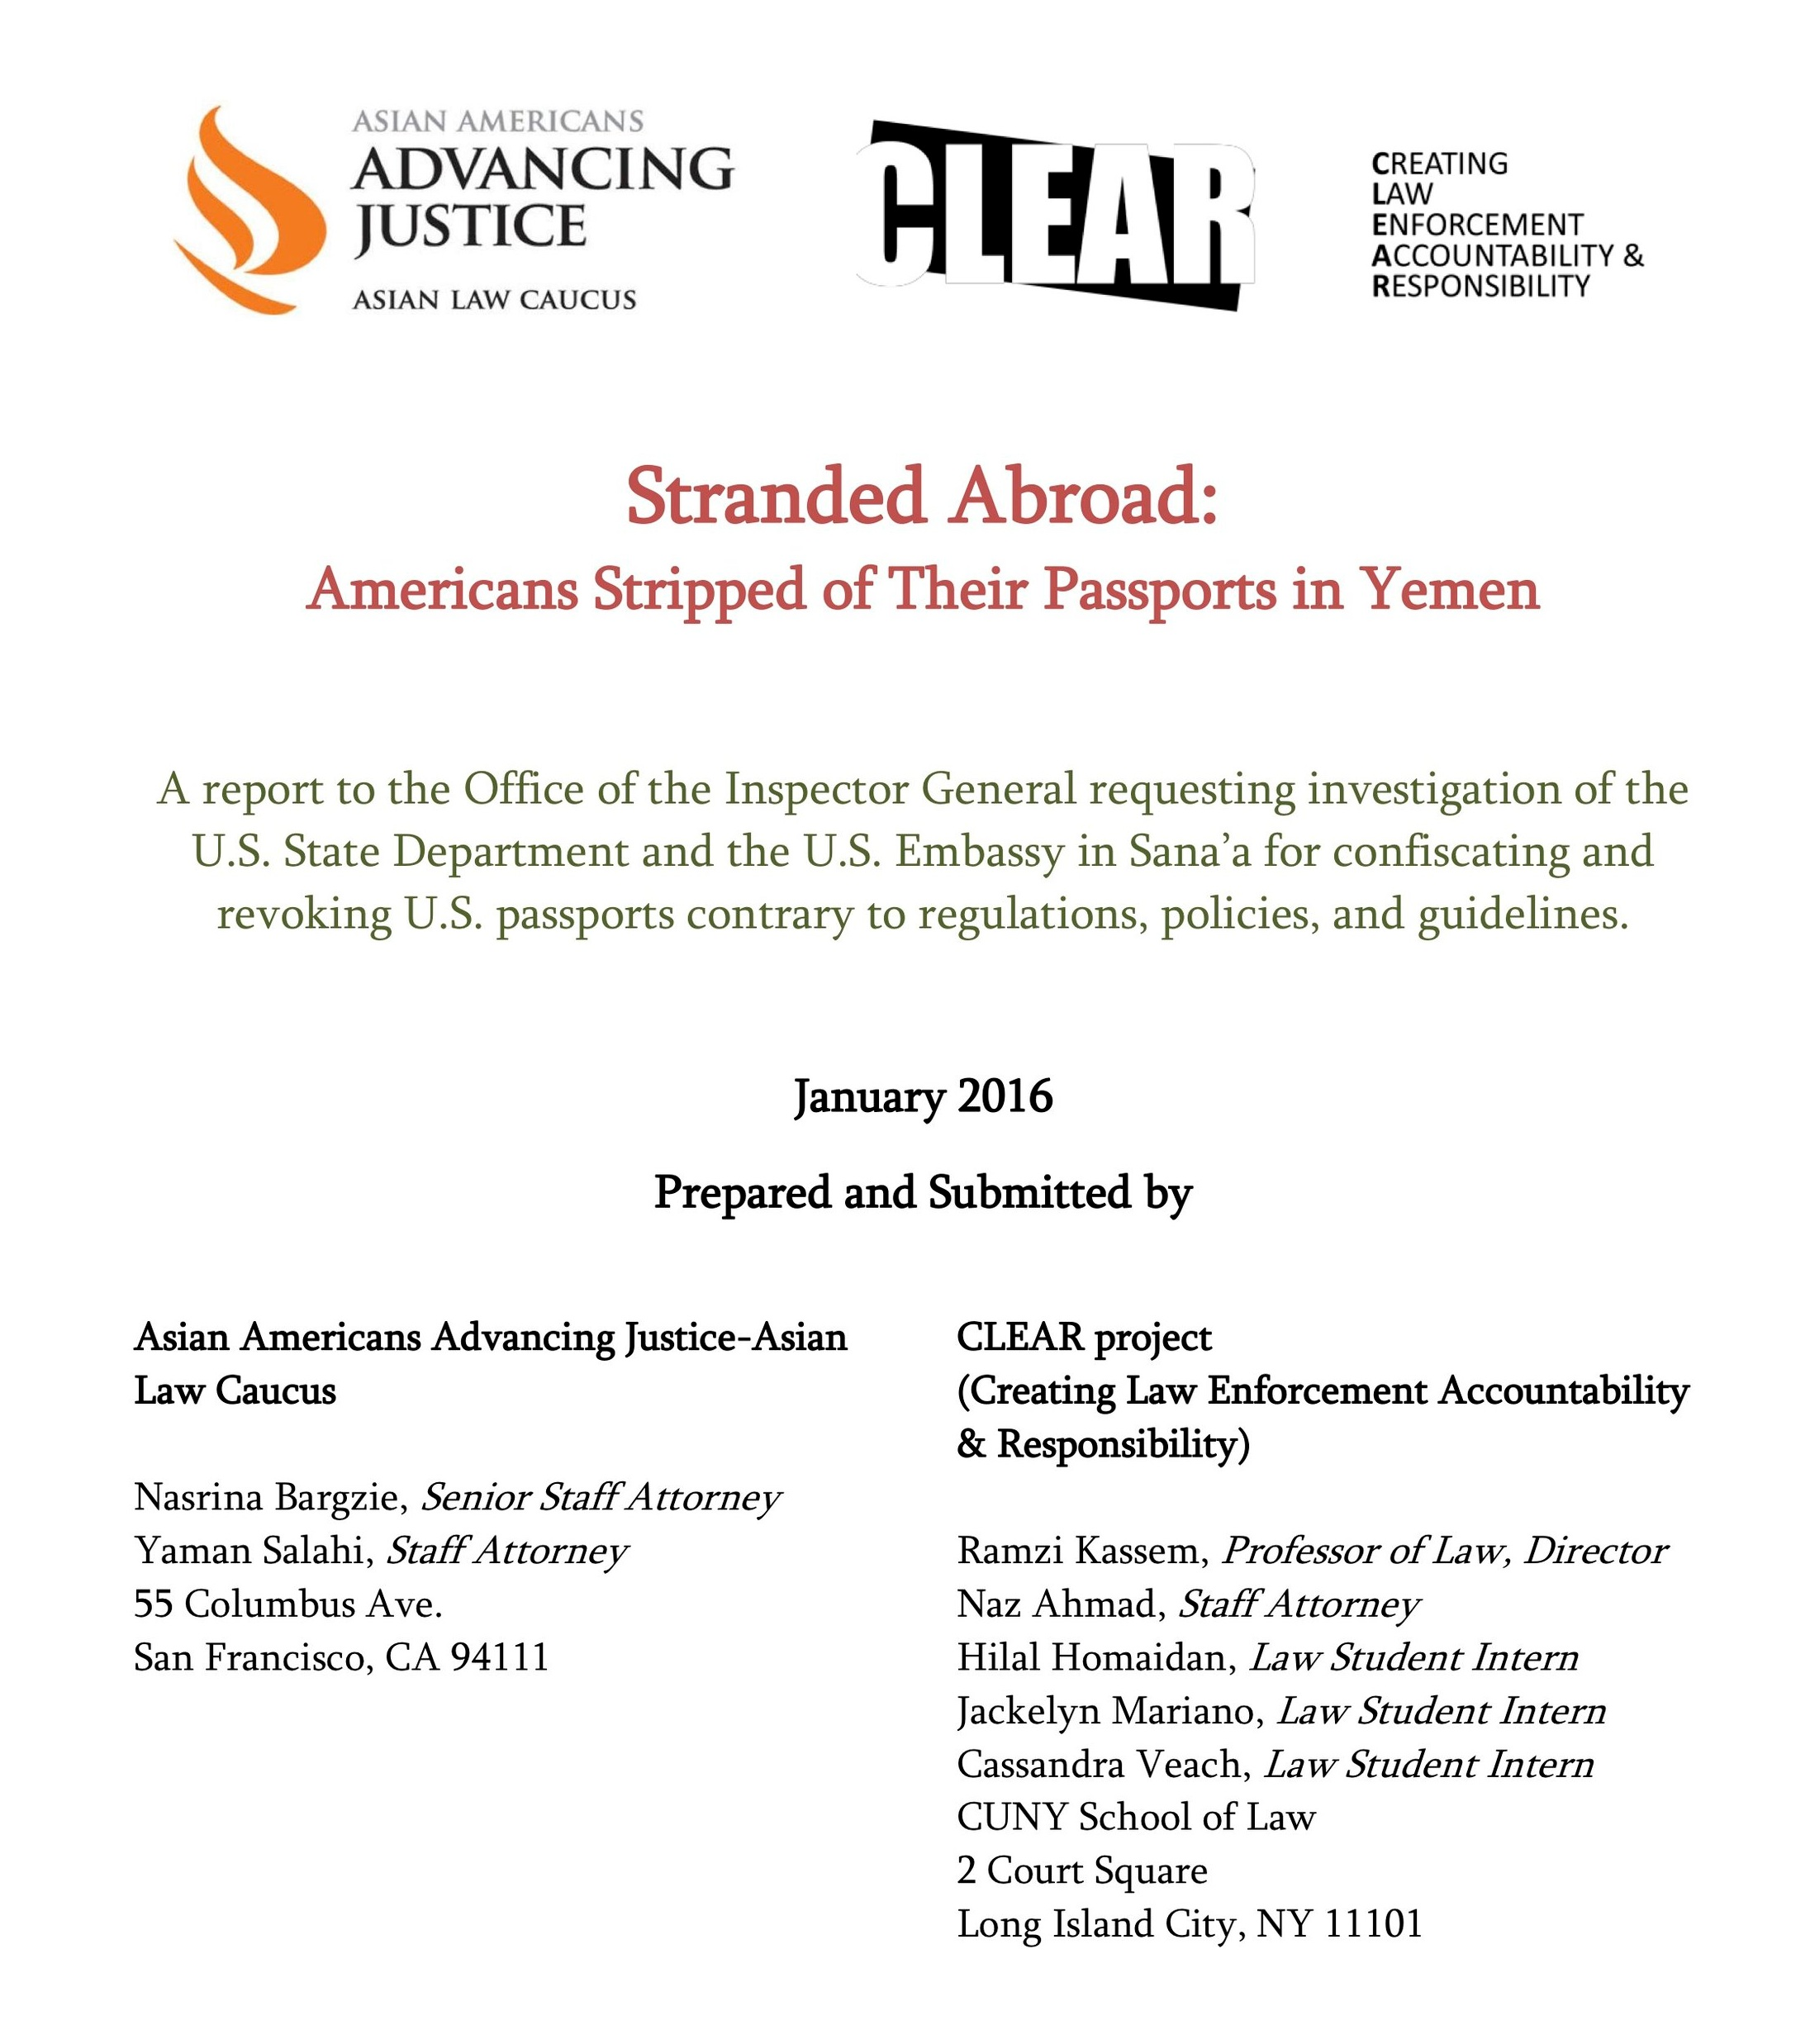 Stranded-Abroad-Americans-Stripped-of-Their-Passports-in-Yemen+COVER.jpg